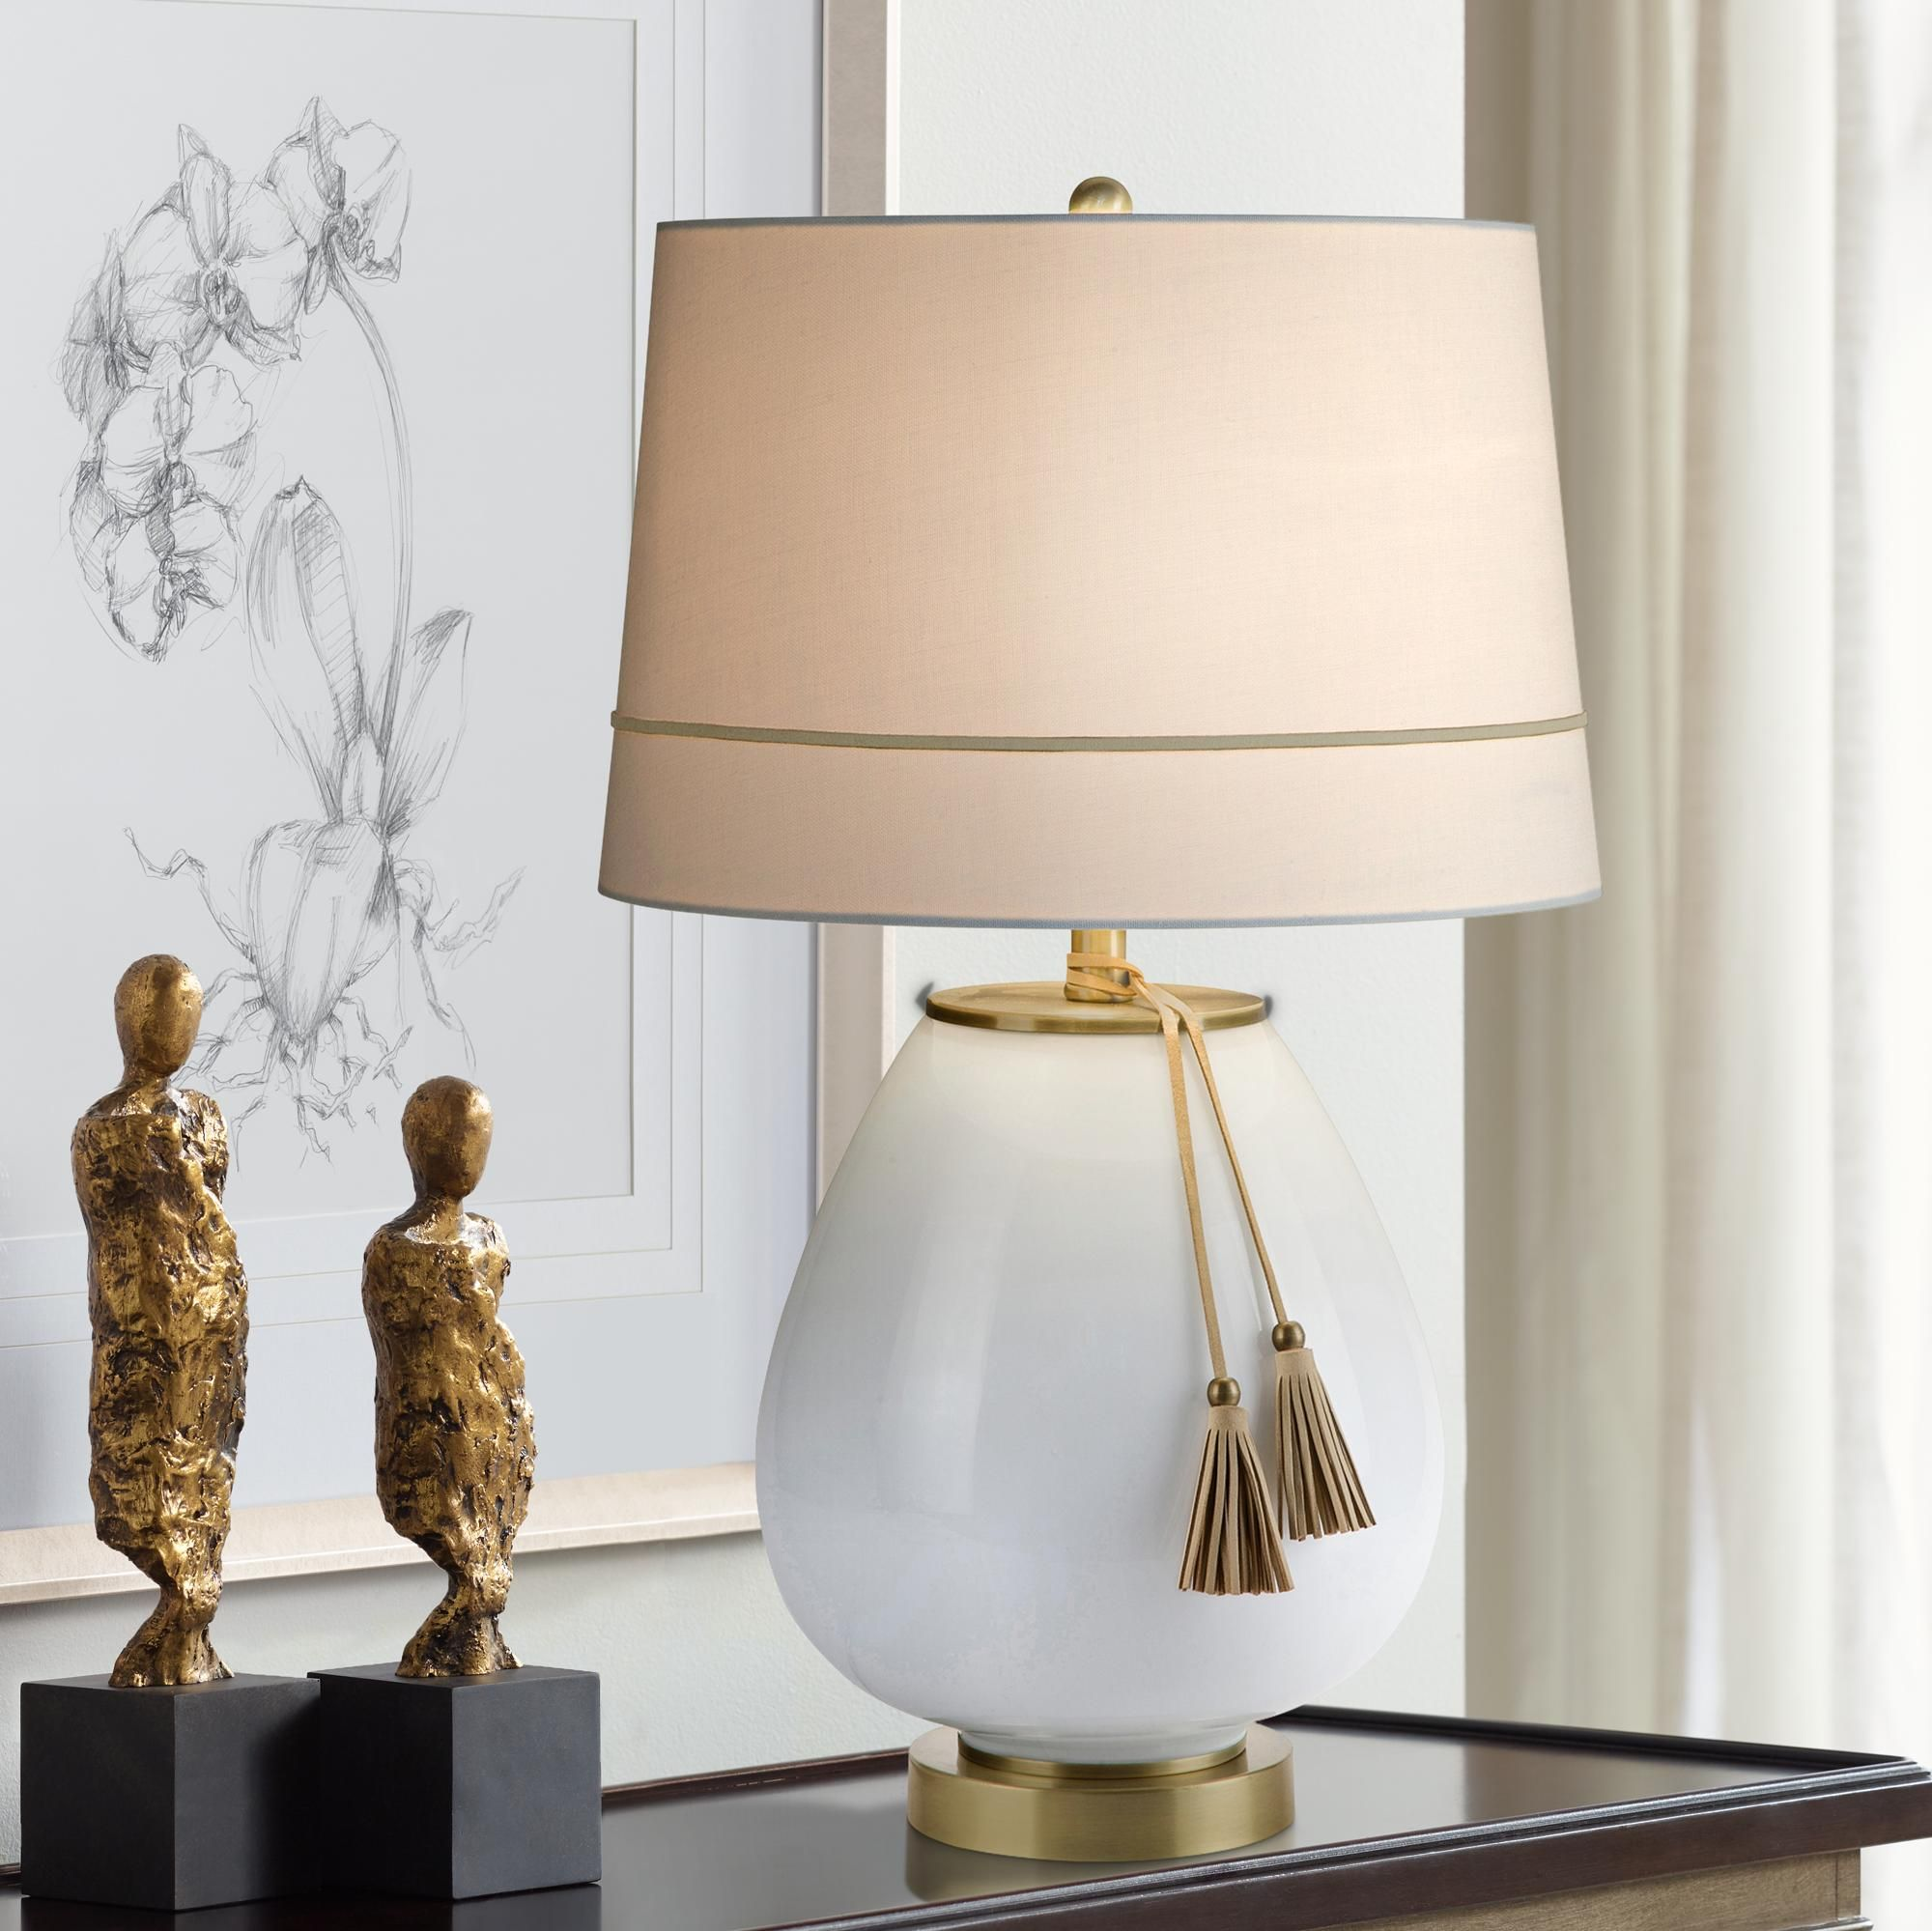 Table Lamps Carey White Milk Glass And Antique Brass Table Lamp In 2020 Table Lamp Lamp White Milk Glass